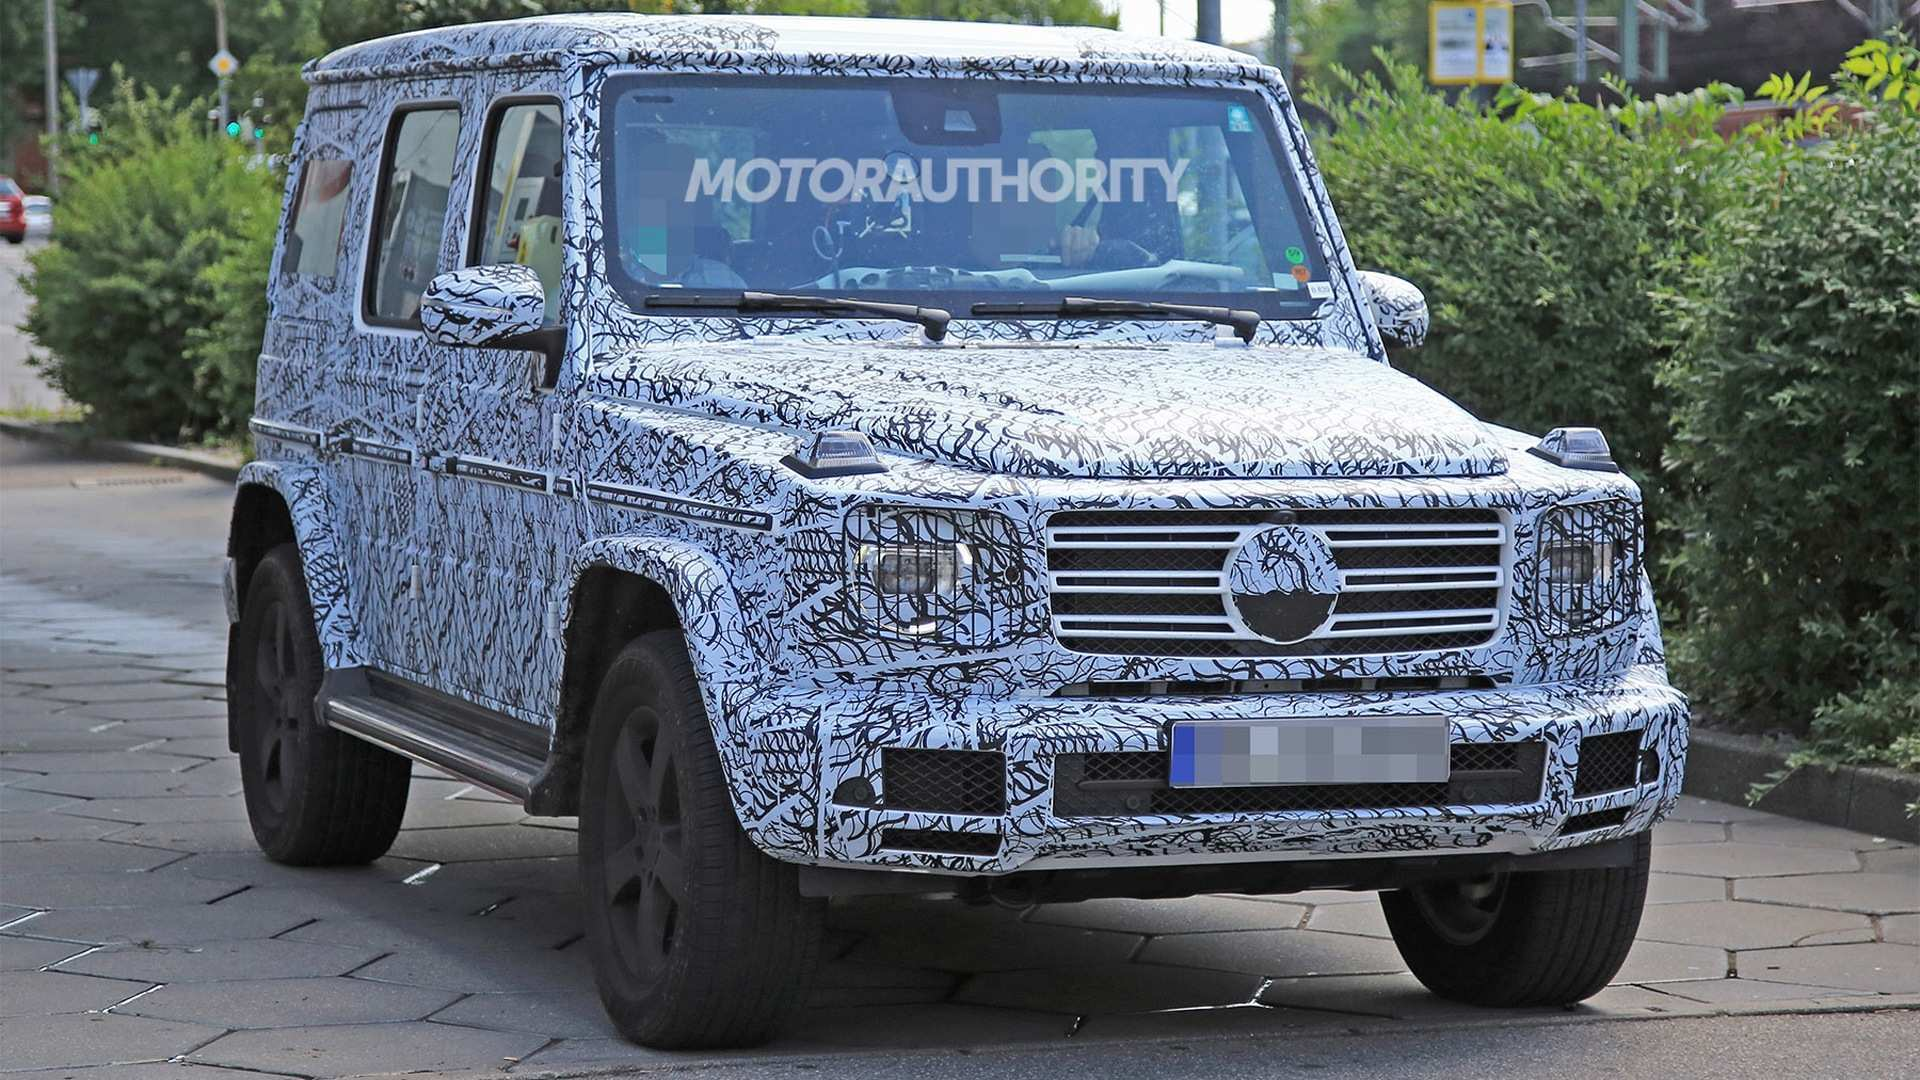 57 New 2020 Mercedes G Wagon Exterior Date Model with 2020 Mercedes G Wagon Exterior Date